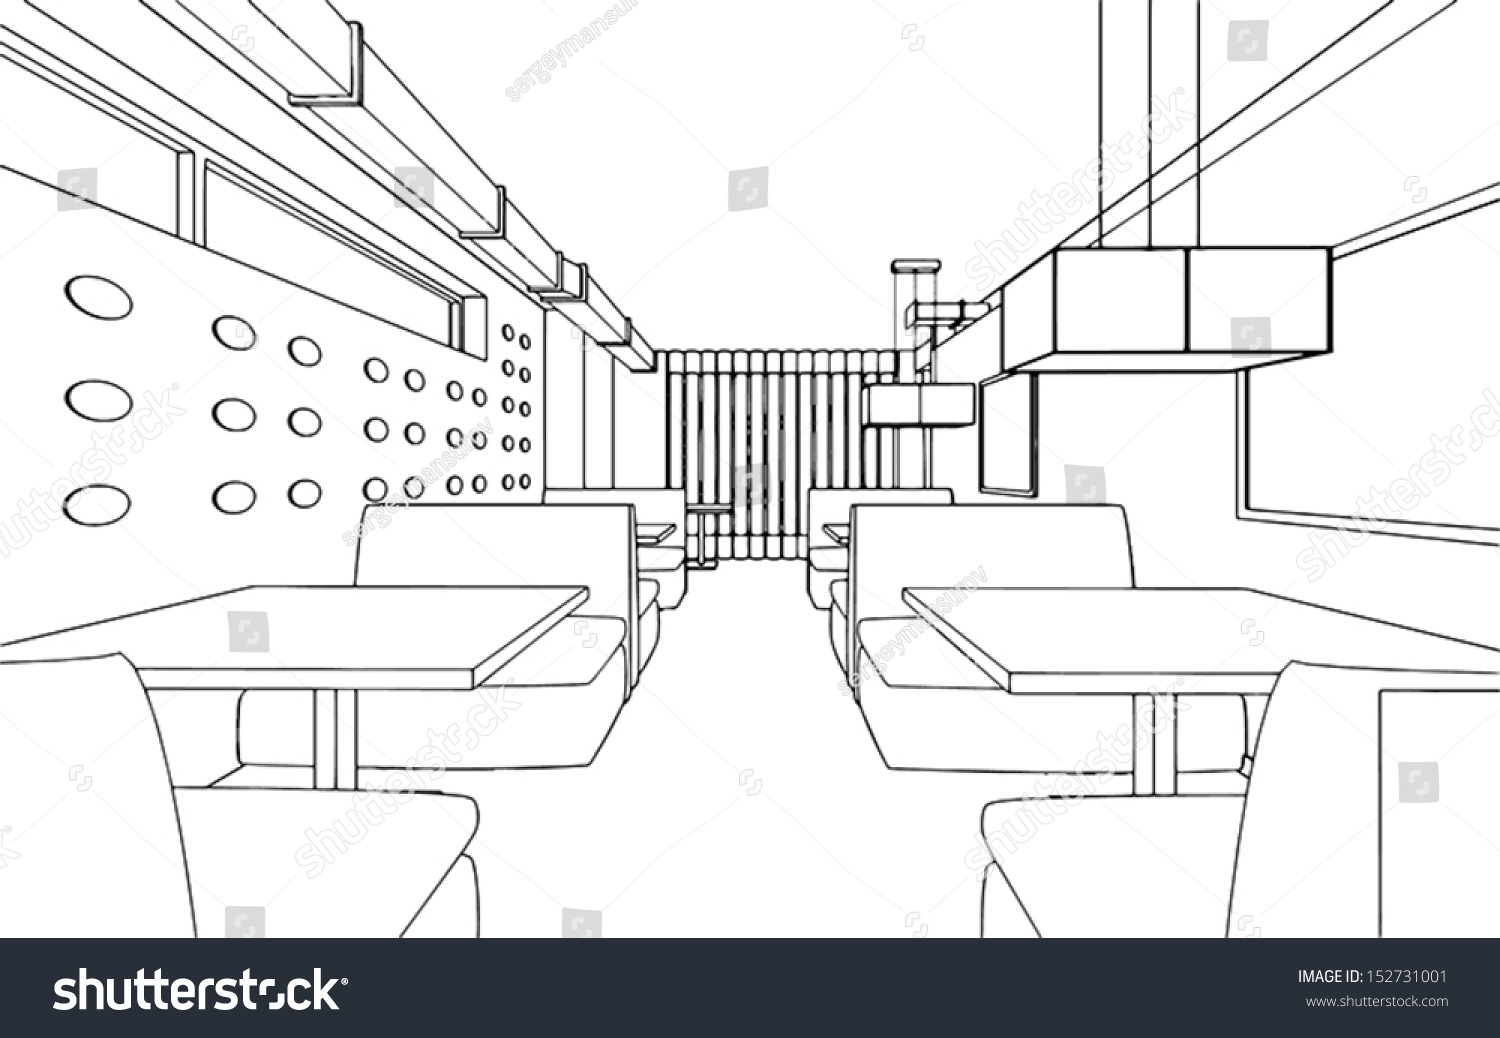 Draft design restaurant d graphic stock vector